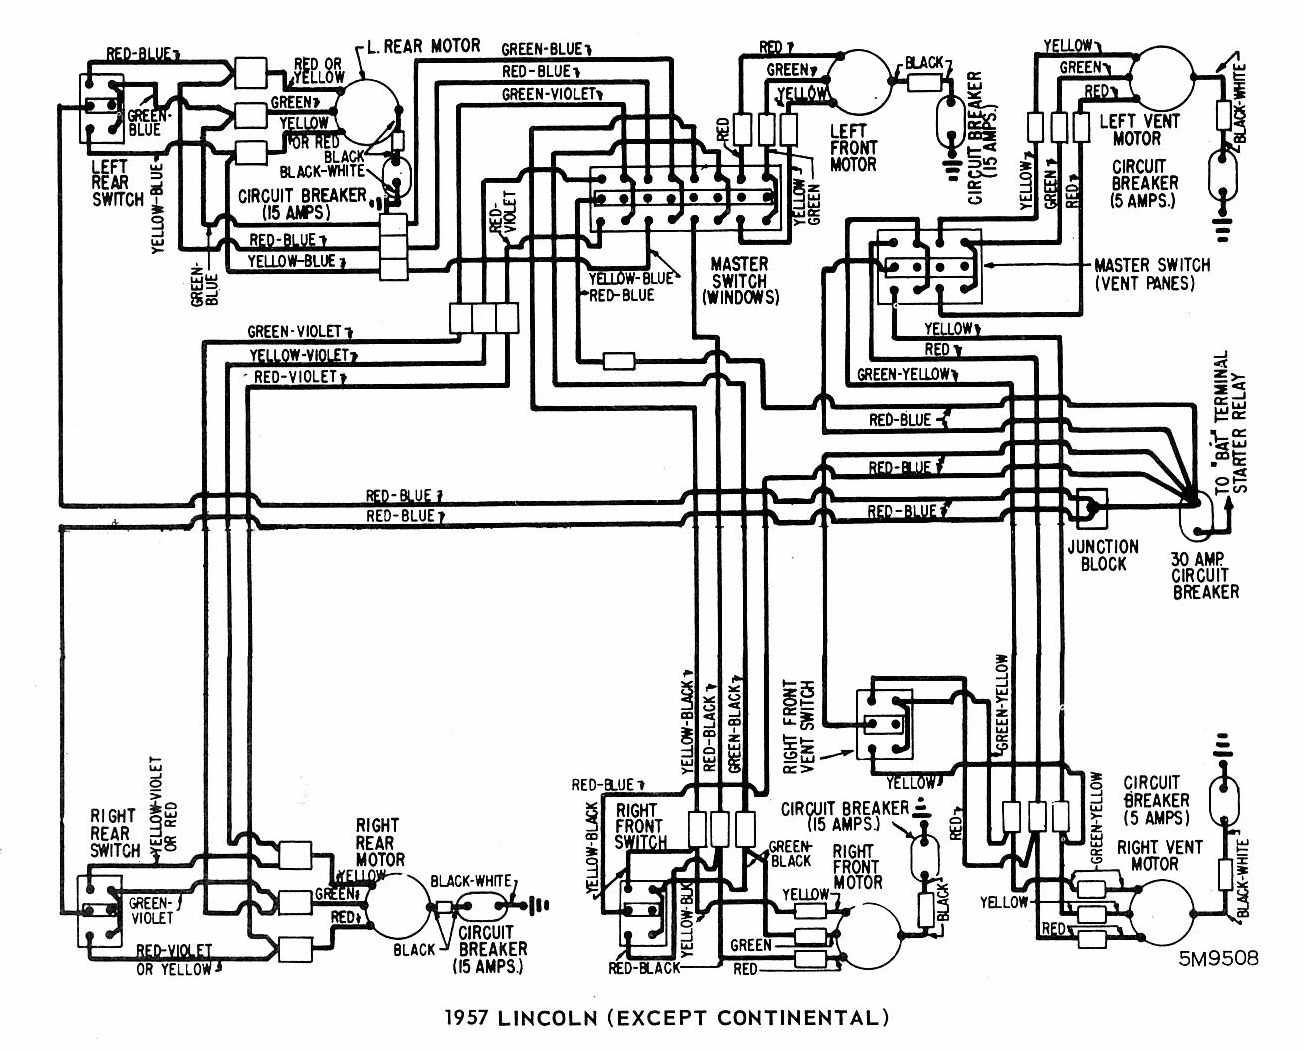 ford taurus radio wiring diagram image radio wiring diagram for 1999 ford crown victoria radio discover on 1999 ford taurus radio wiring